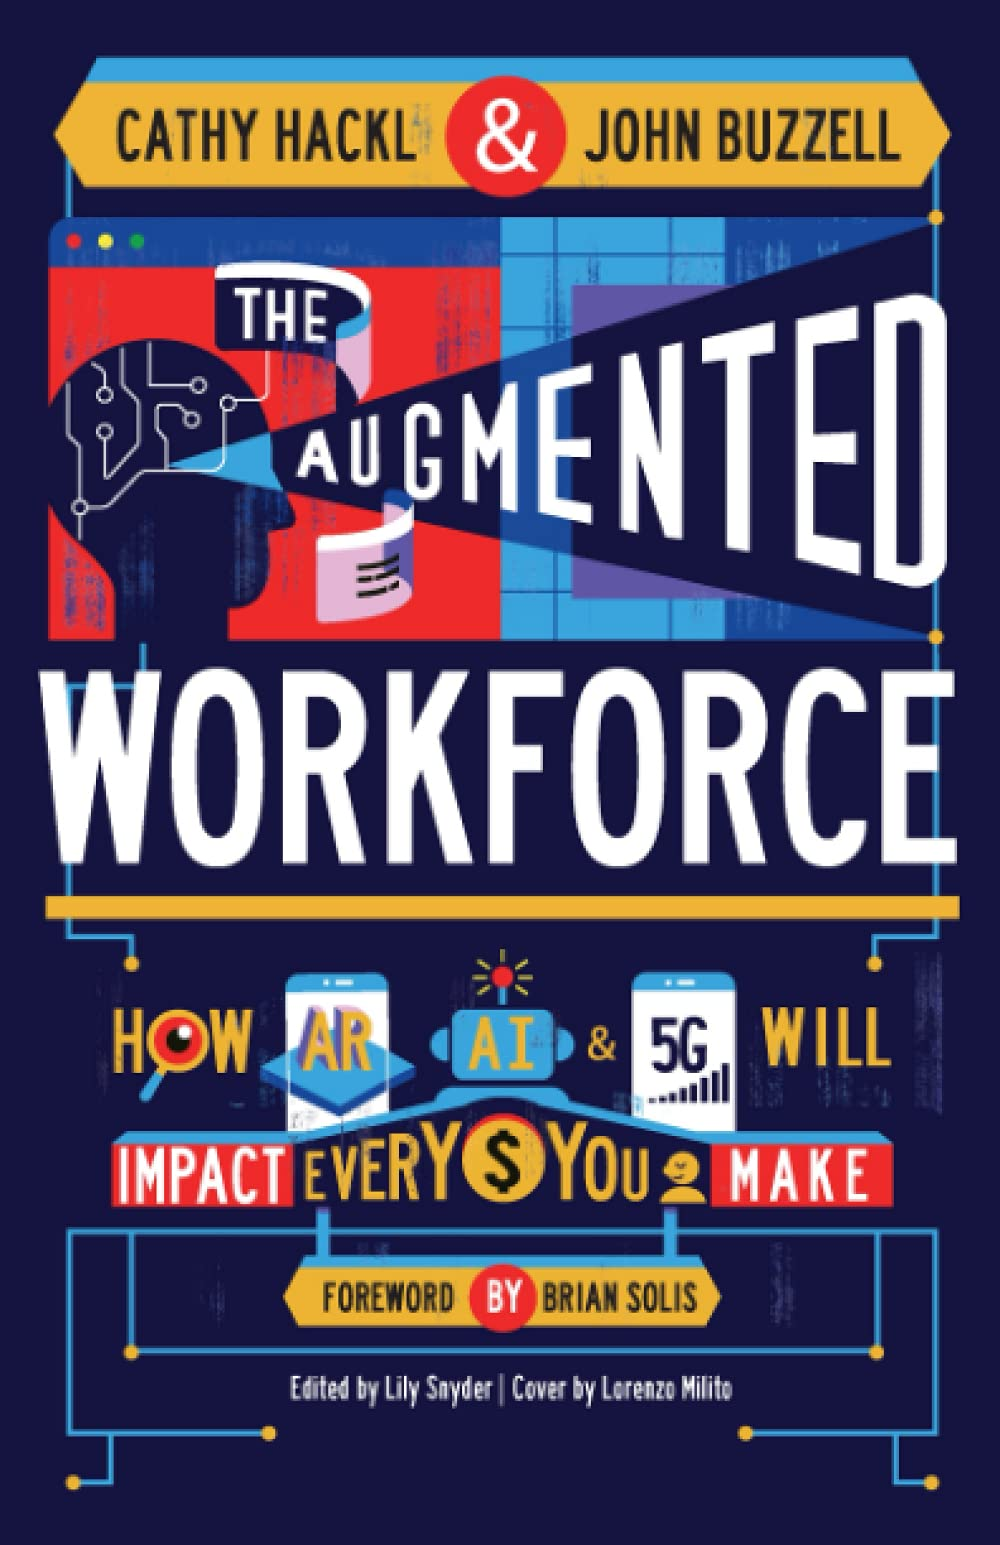 The Augmented Workforce: How Artificial Intelligence, Augmented Reality,  and 5G Will Impact Every Dollar You Make: Hackl, Cathy, Buzzell, John:  9781952602399: Amazon.com: Books